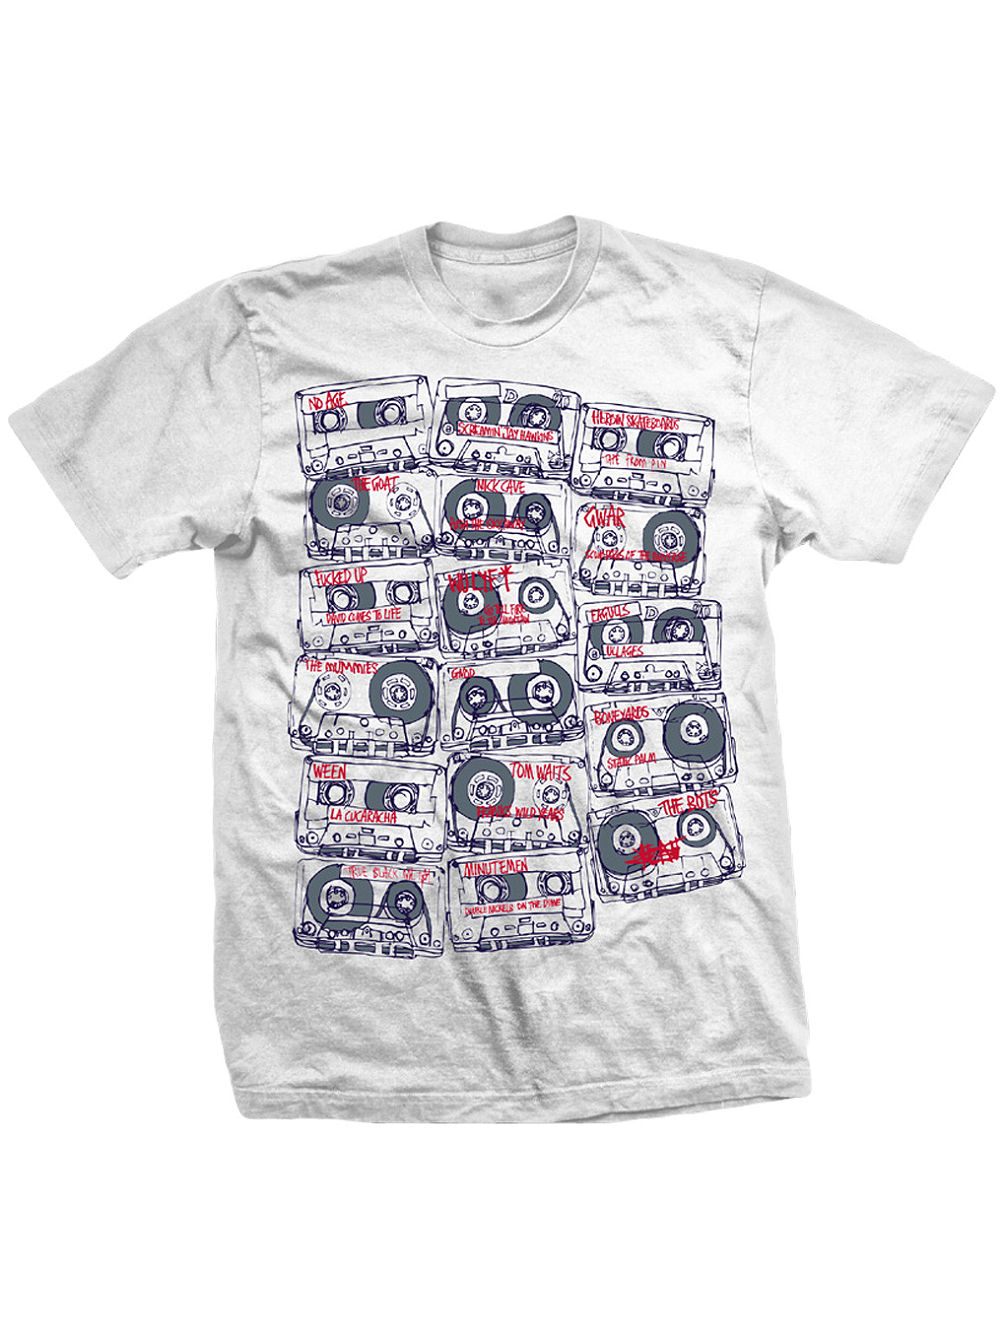 Tapes T-Shirt